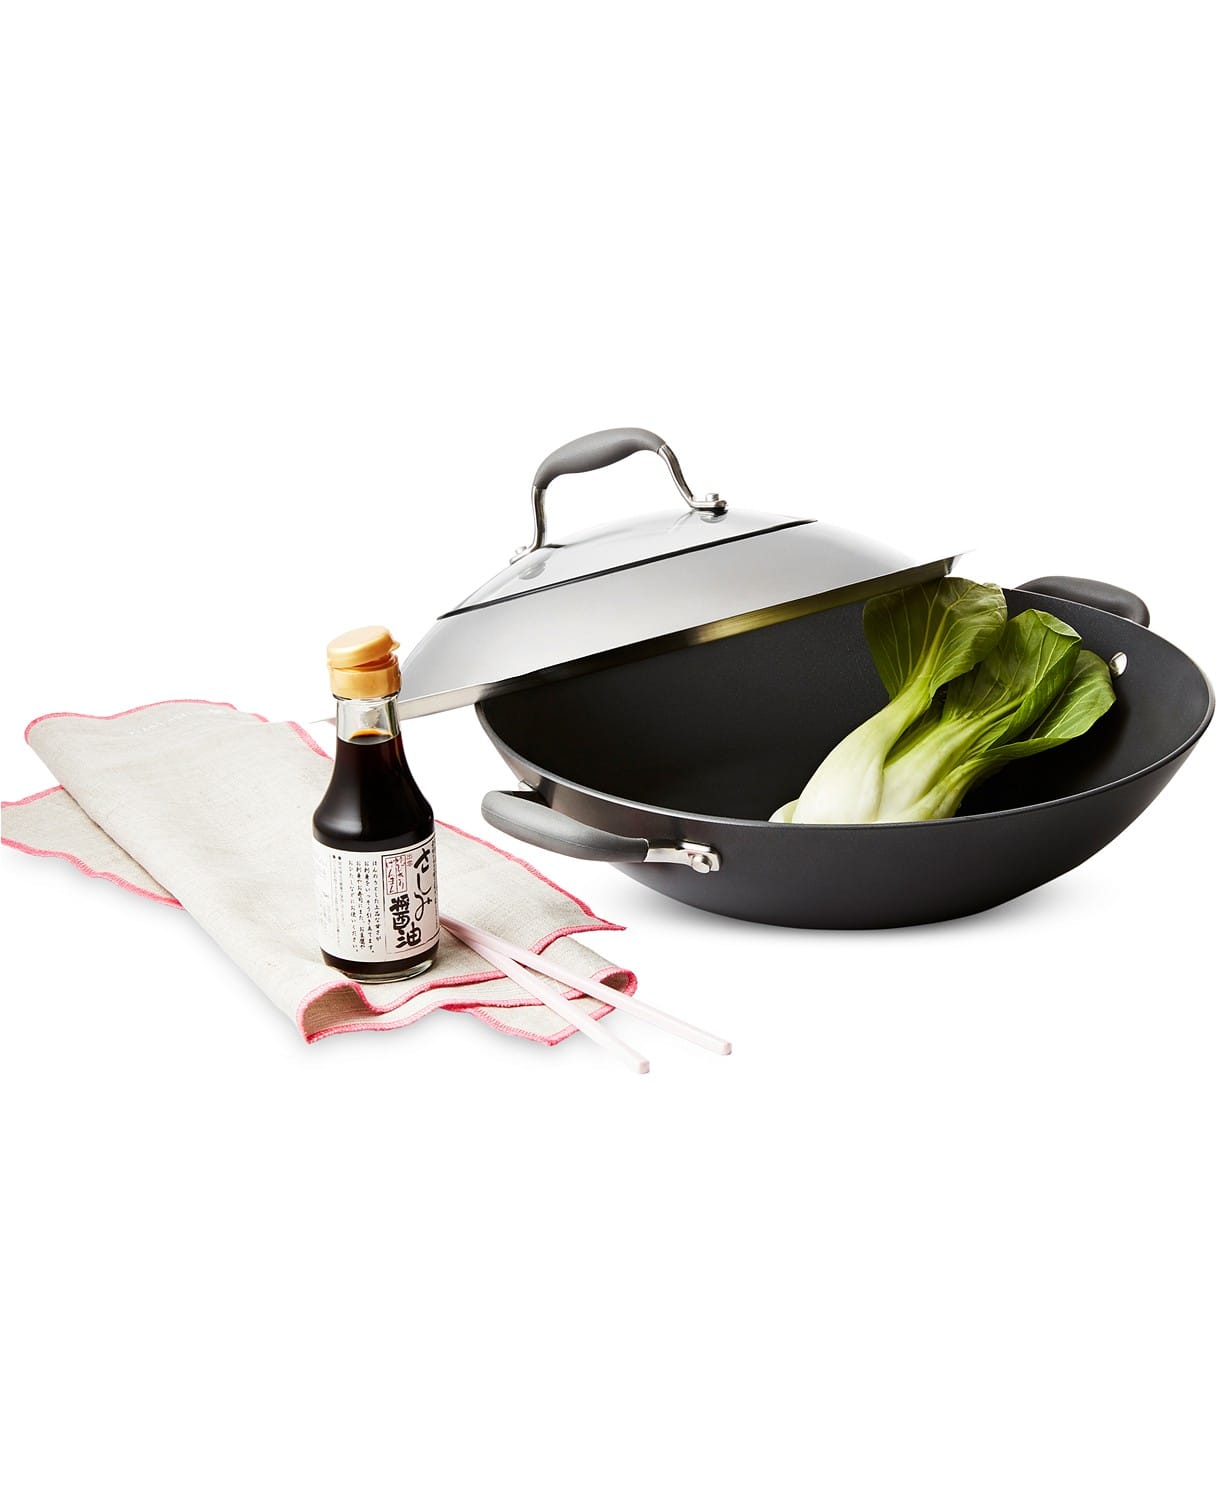 "Anolon Advanced Nonstick 14"" Covered Wok $29.99"